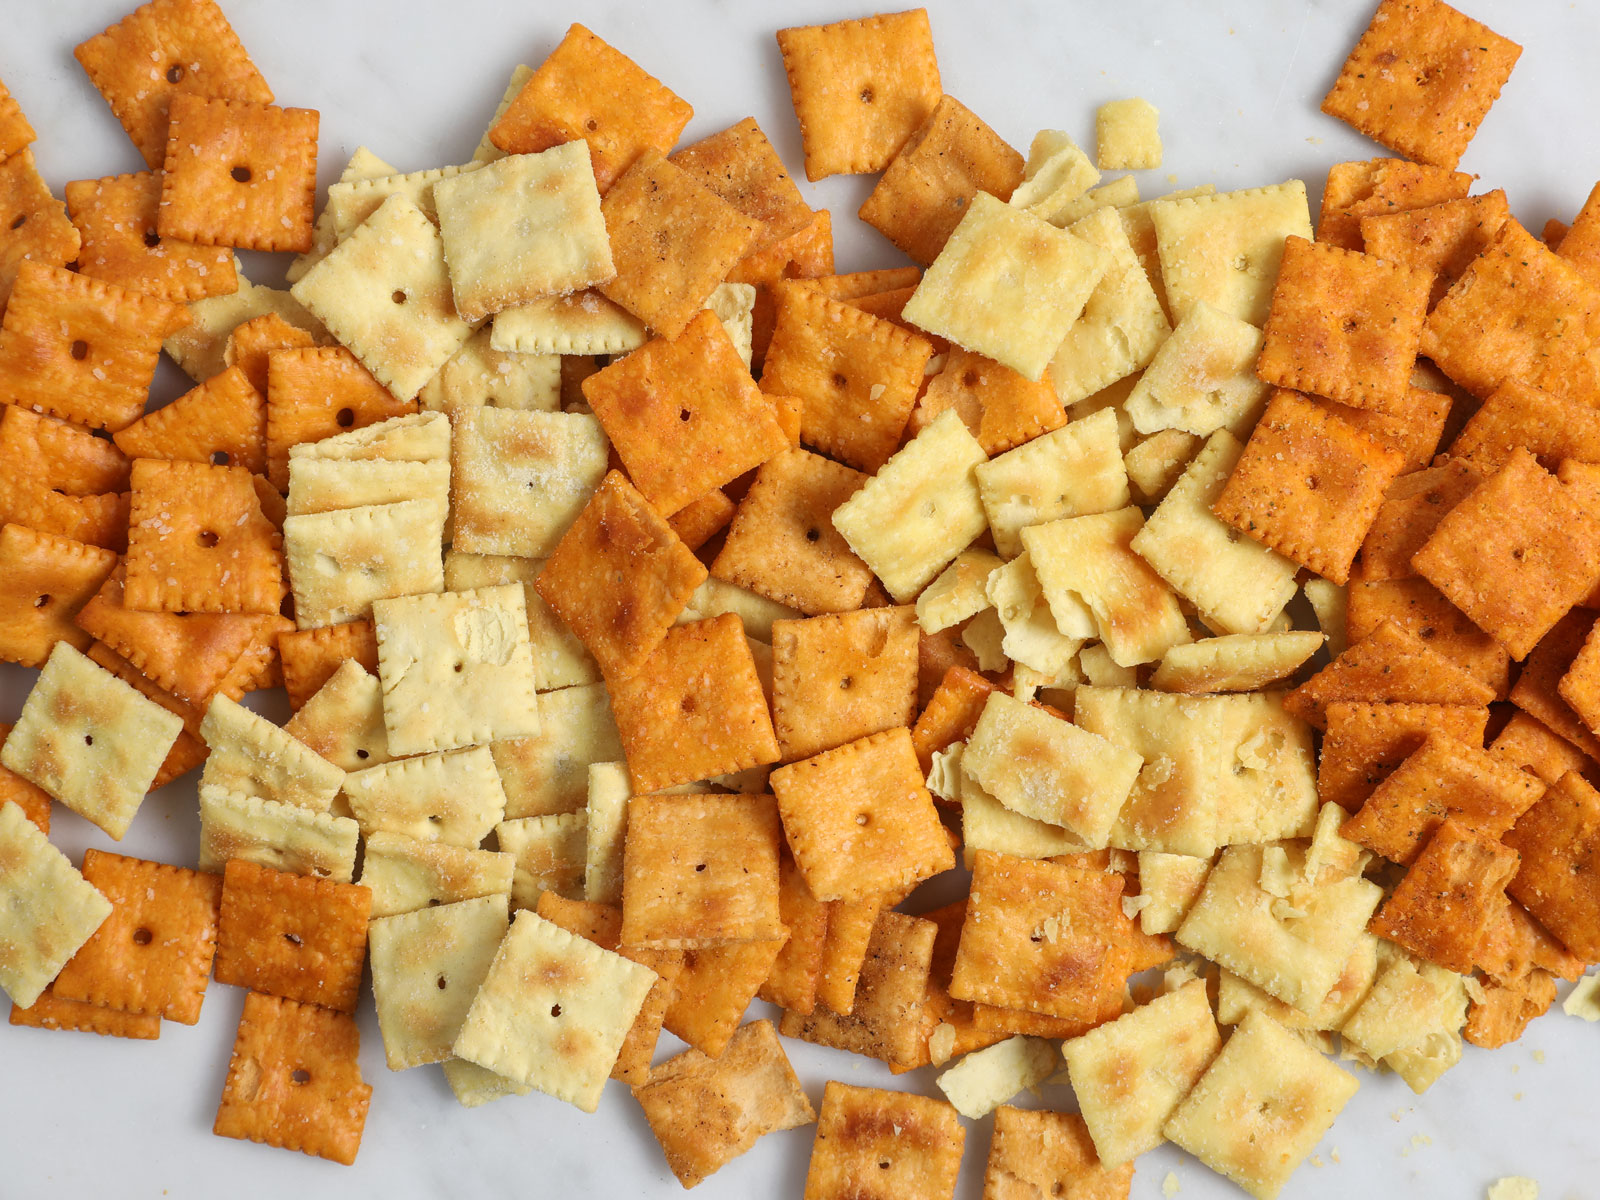 Cheez-Its Has Hidden a Secret Snack Bunker Somewhere In the Country